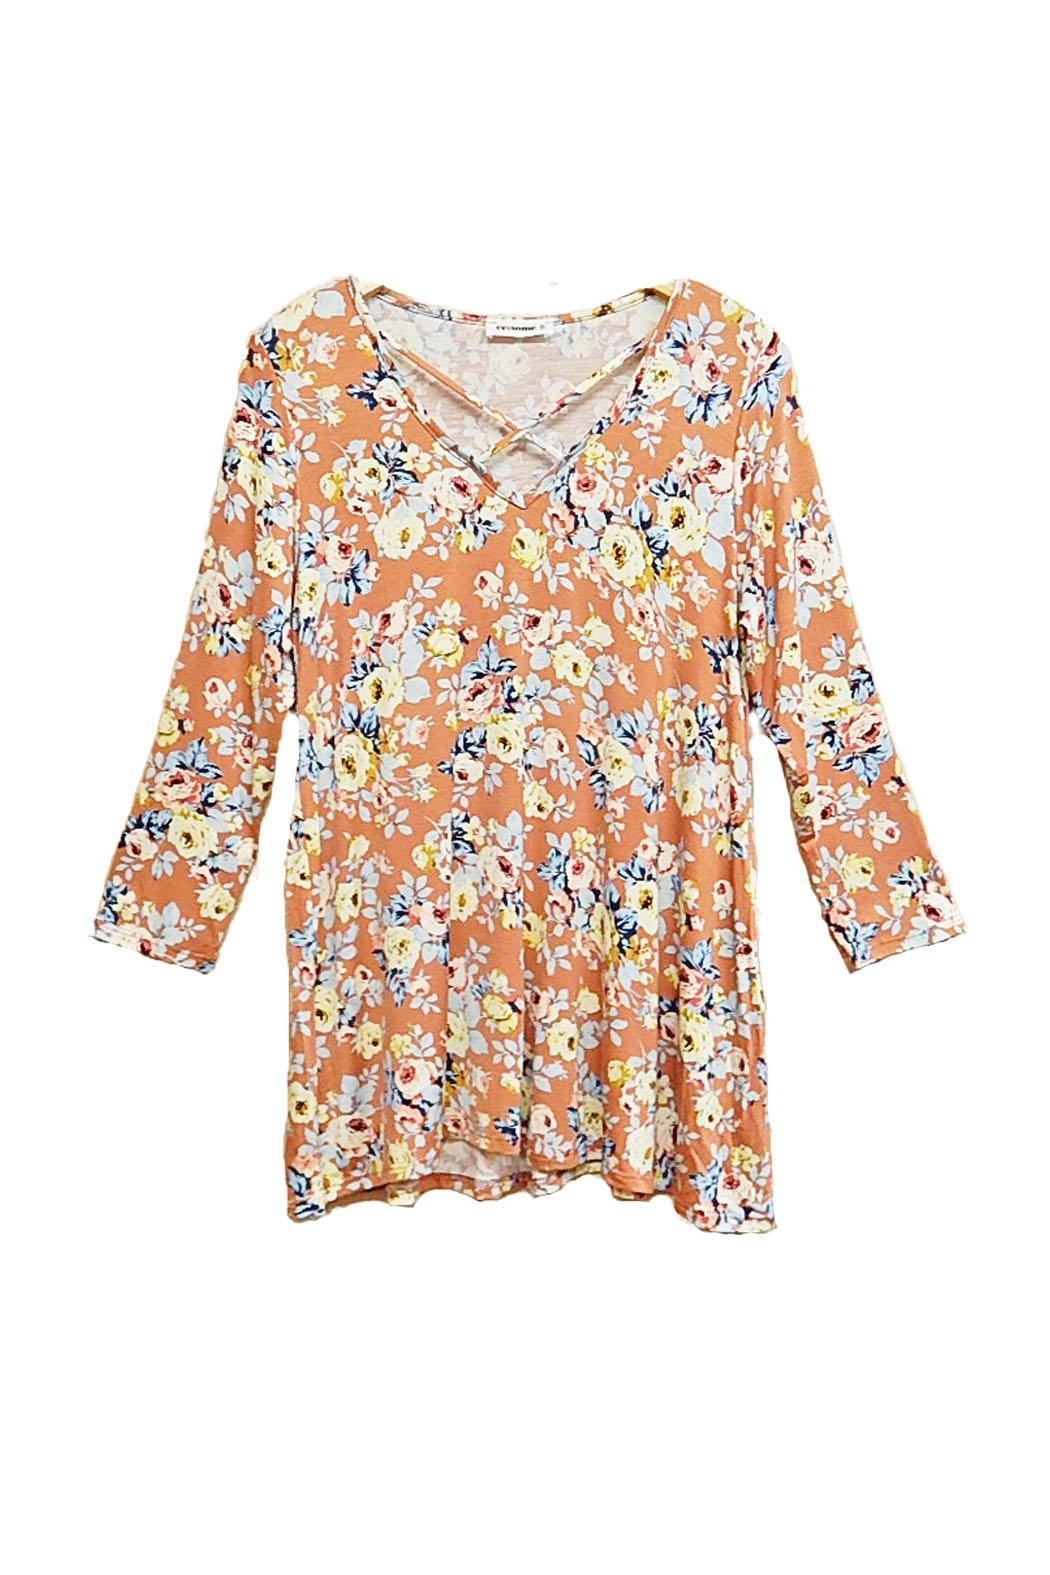 ee:some Peach Floral Top - Front Full Image